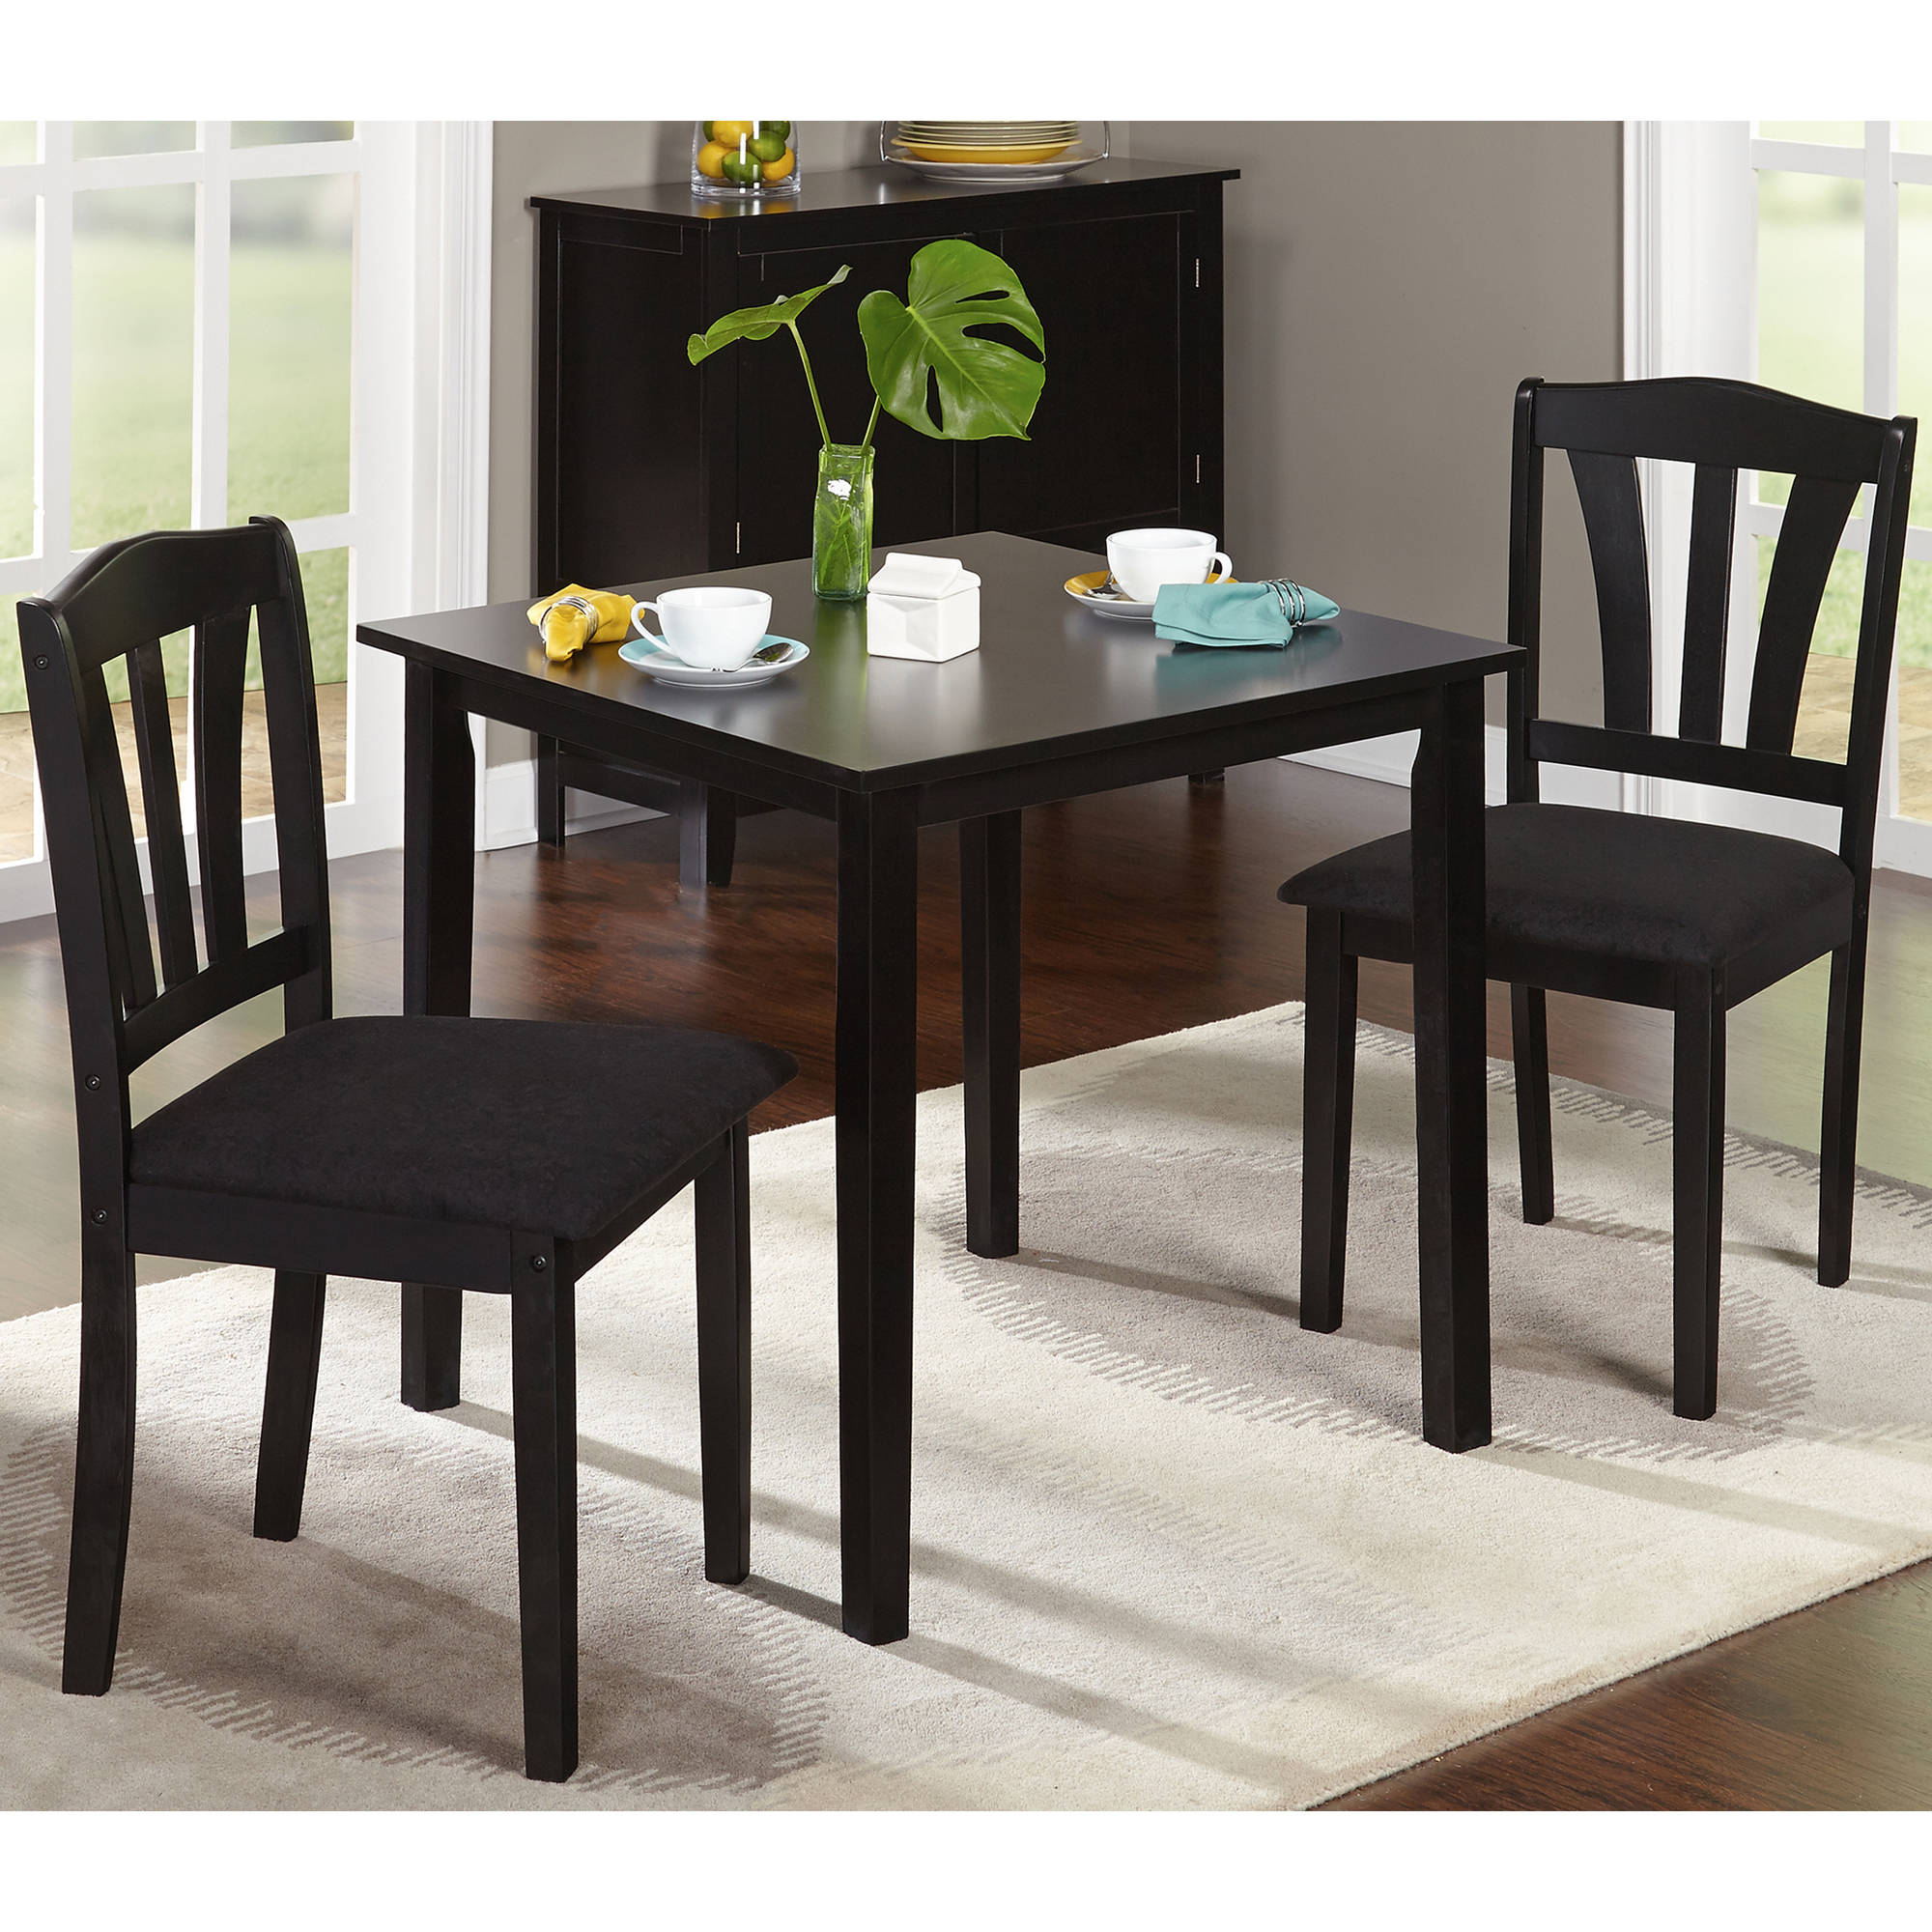 3 Pieces Dining Tables And Chair Set inside Recent Details About 3 Piece Dining Set Table 2 Chairs Kitchen Room Wood Furniture  Dinette Modern New